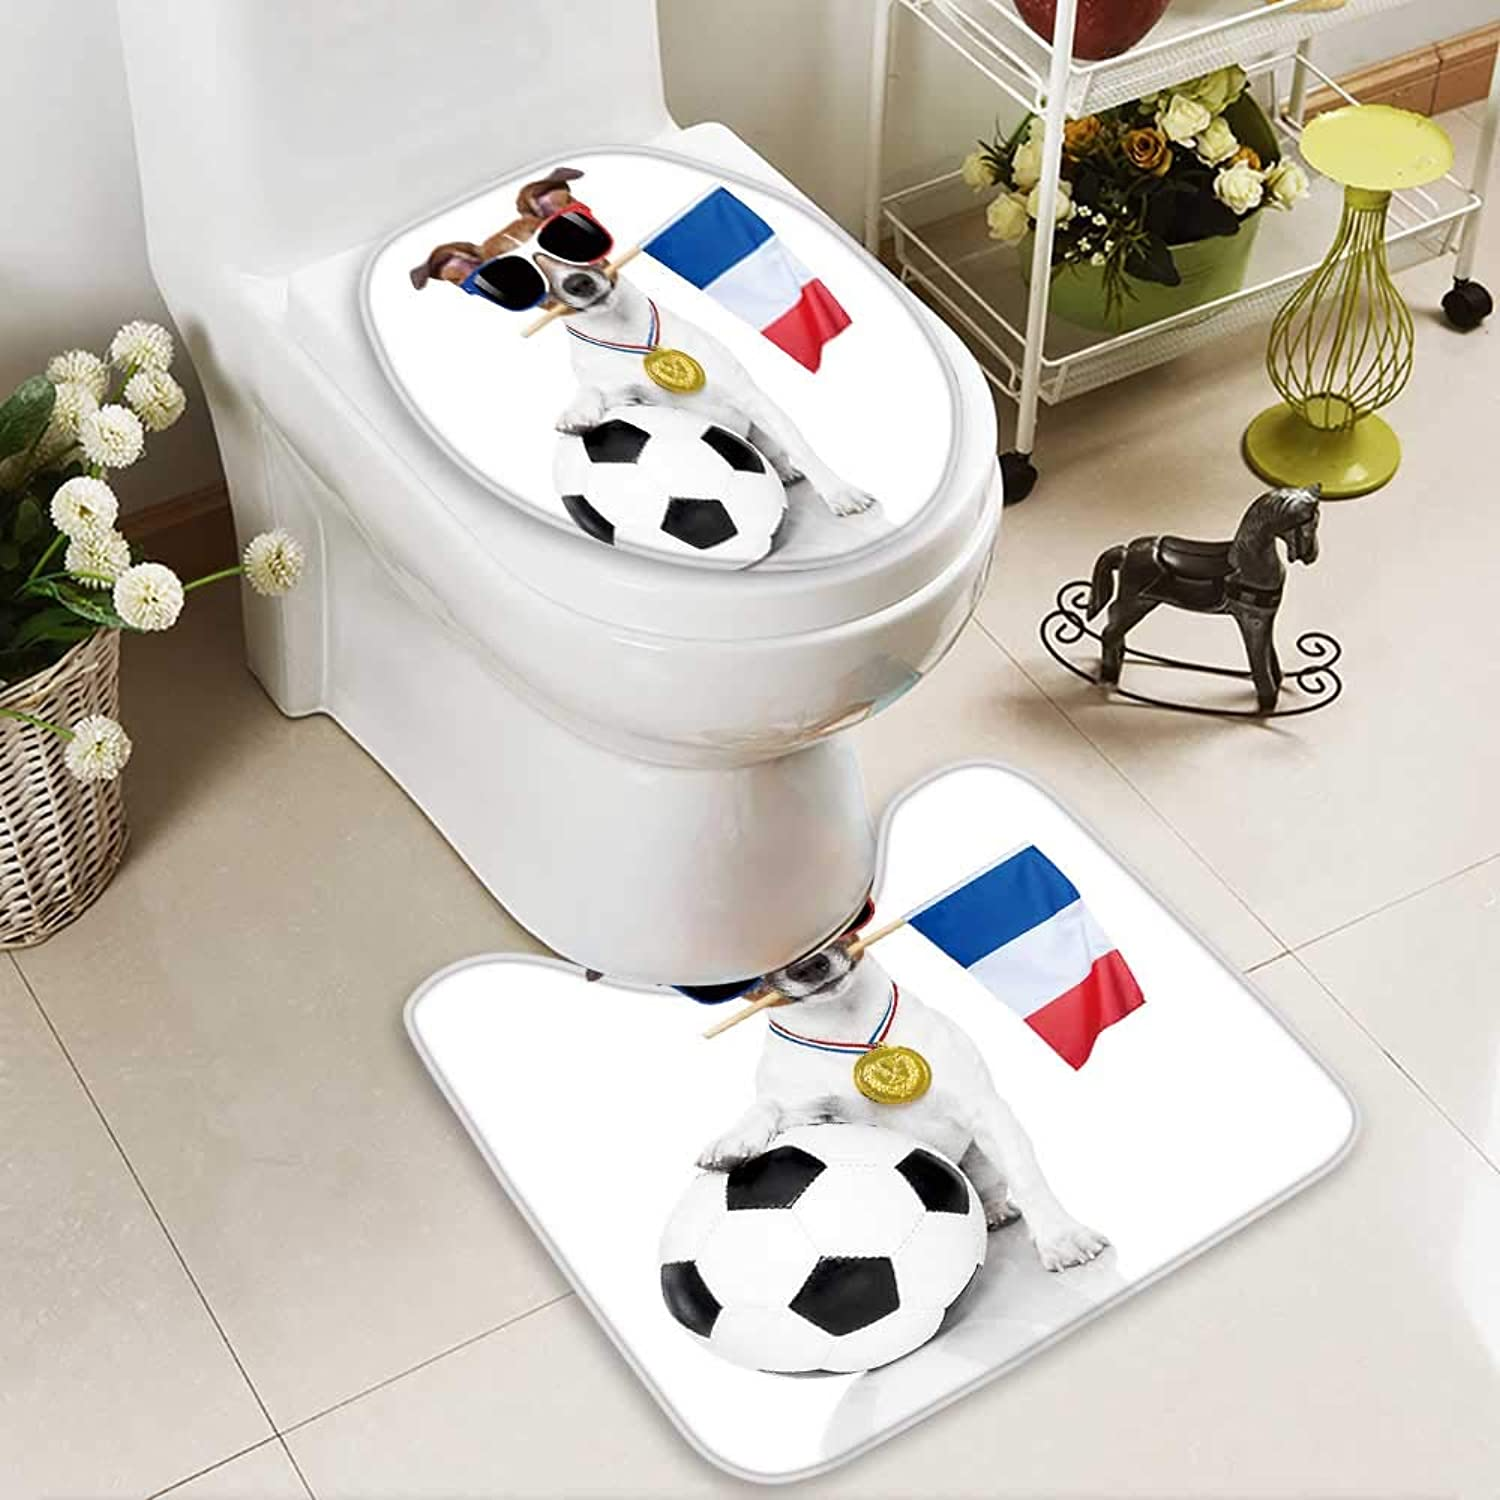 Analisahome Cushion NonSlip Toilet Mat Jack Russell Dog with Football Soft NonSlip Water